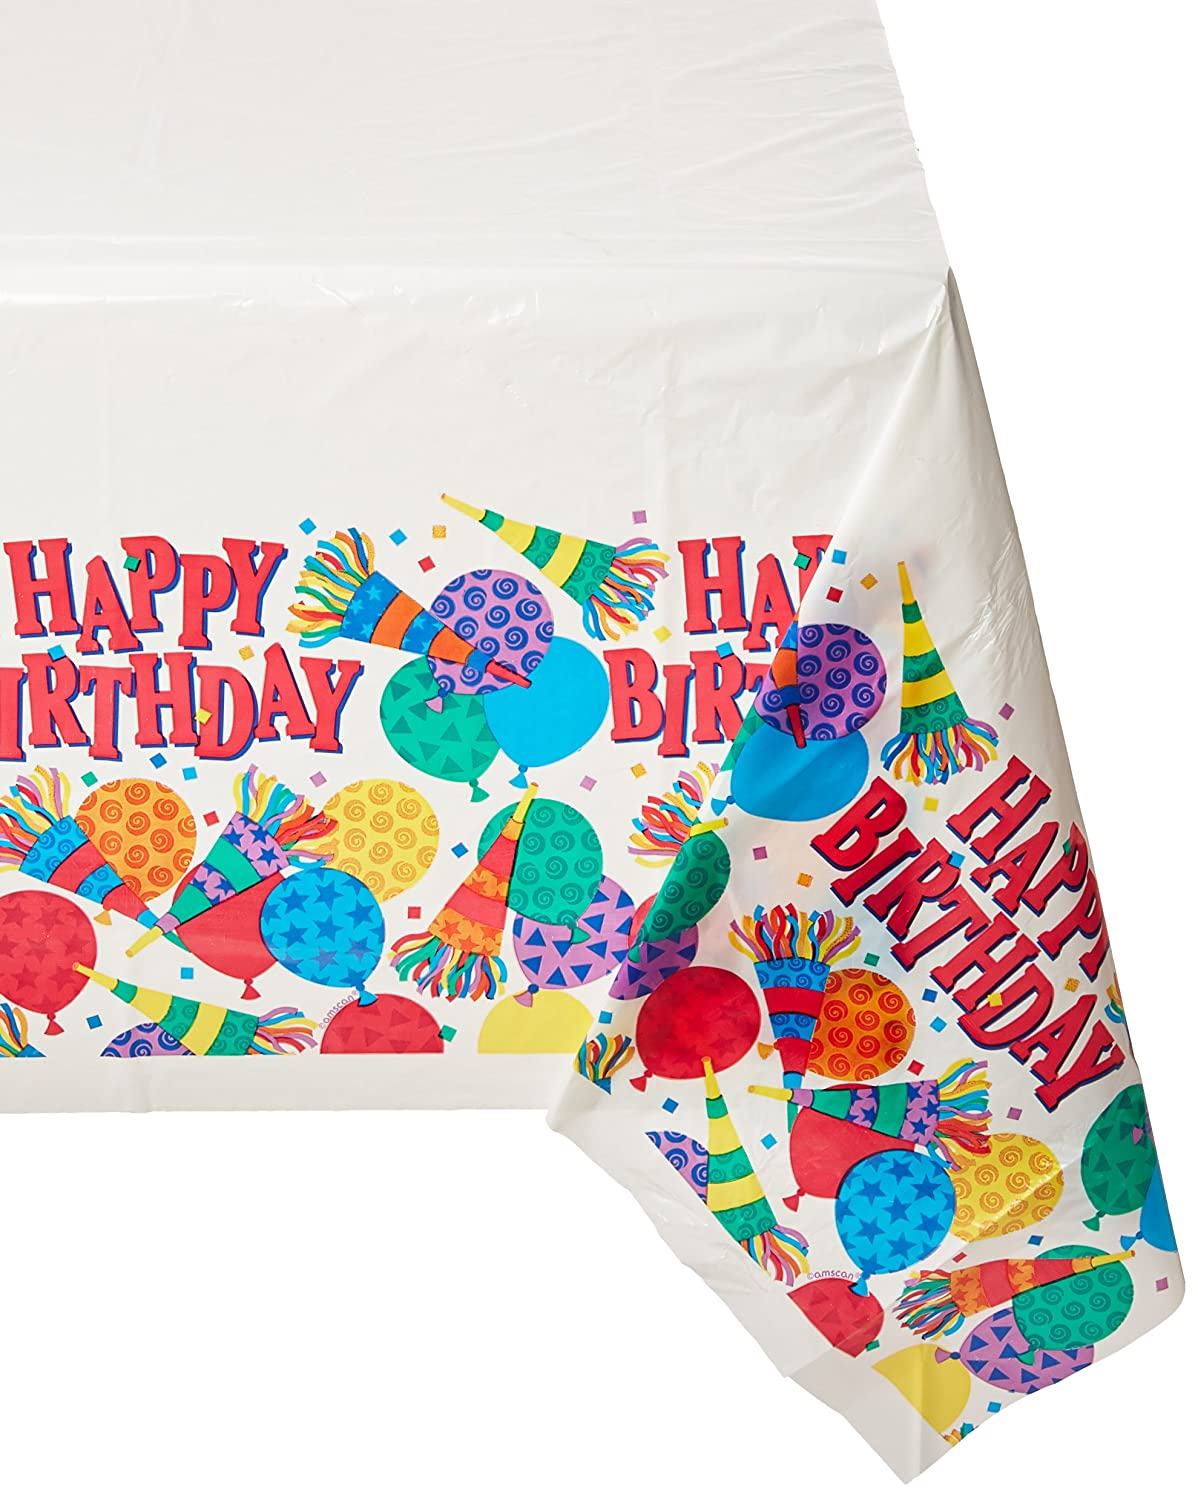 12 Ct 576970 TradeMart Inc Horns /& Balloons Collection Plastic Table Cover Birthday